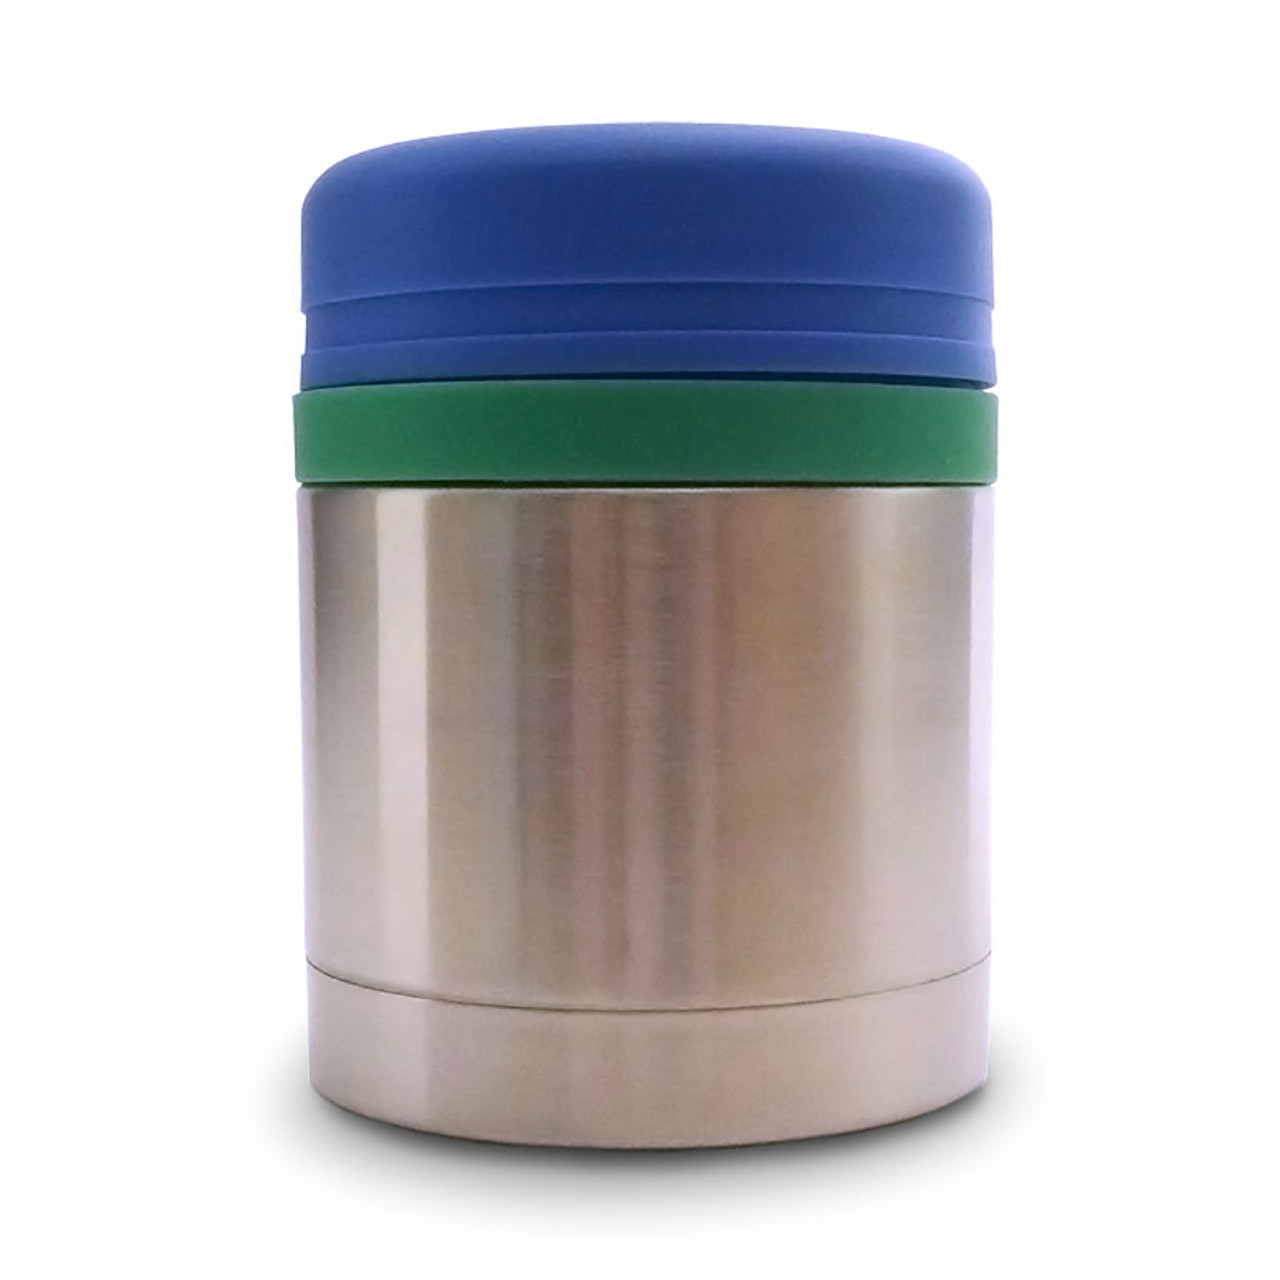 New Wave Enviro Stainless Steel Insulated Food Container